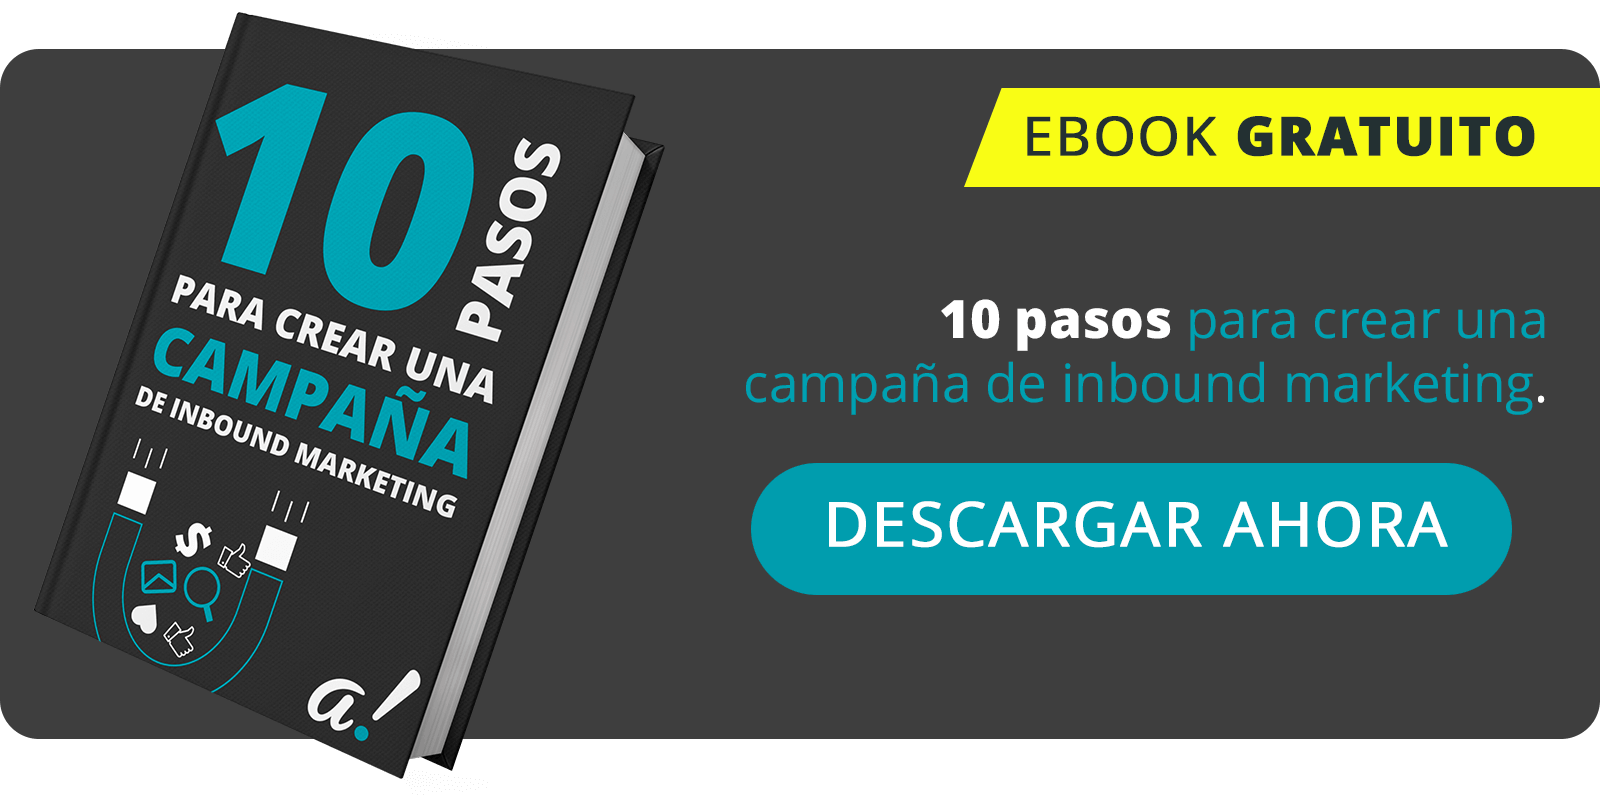 Pasos para crear campaña de inbound marketing